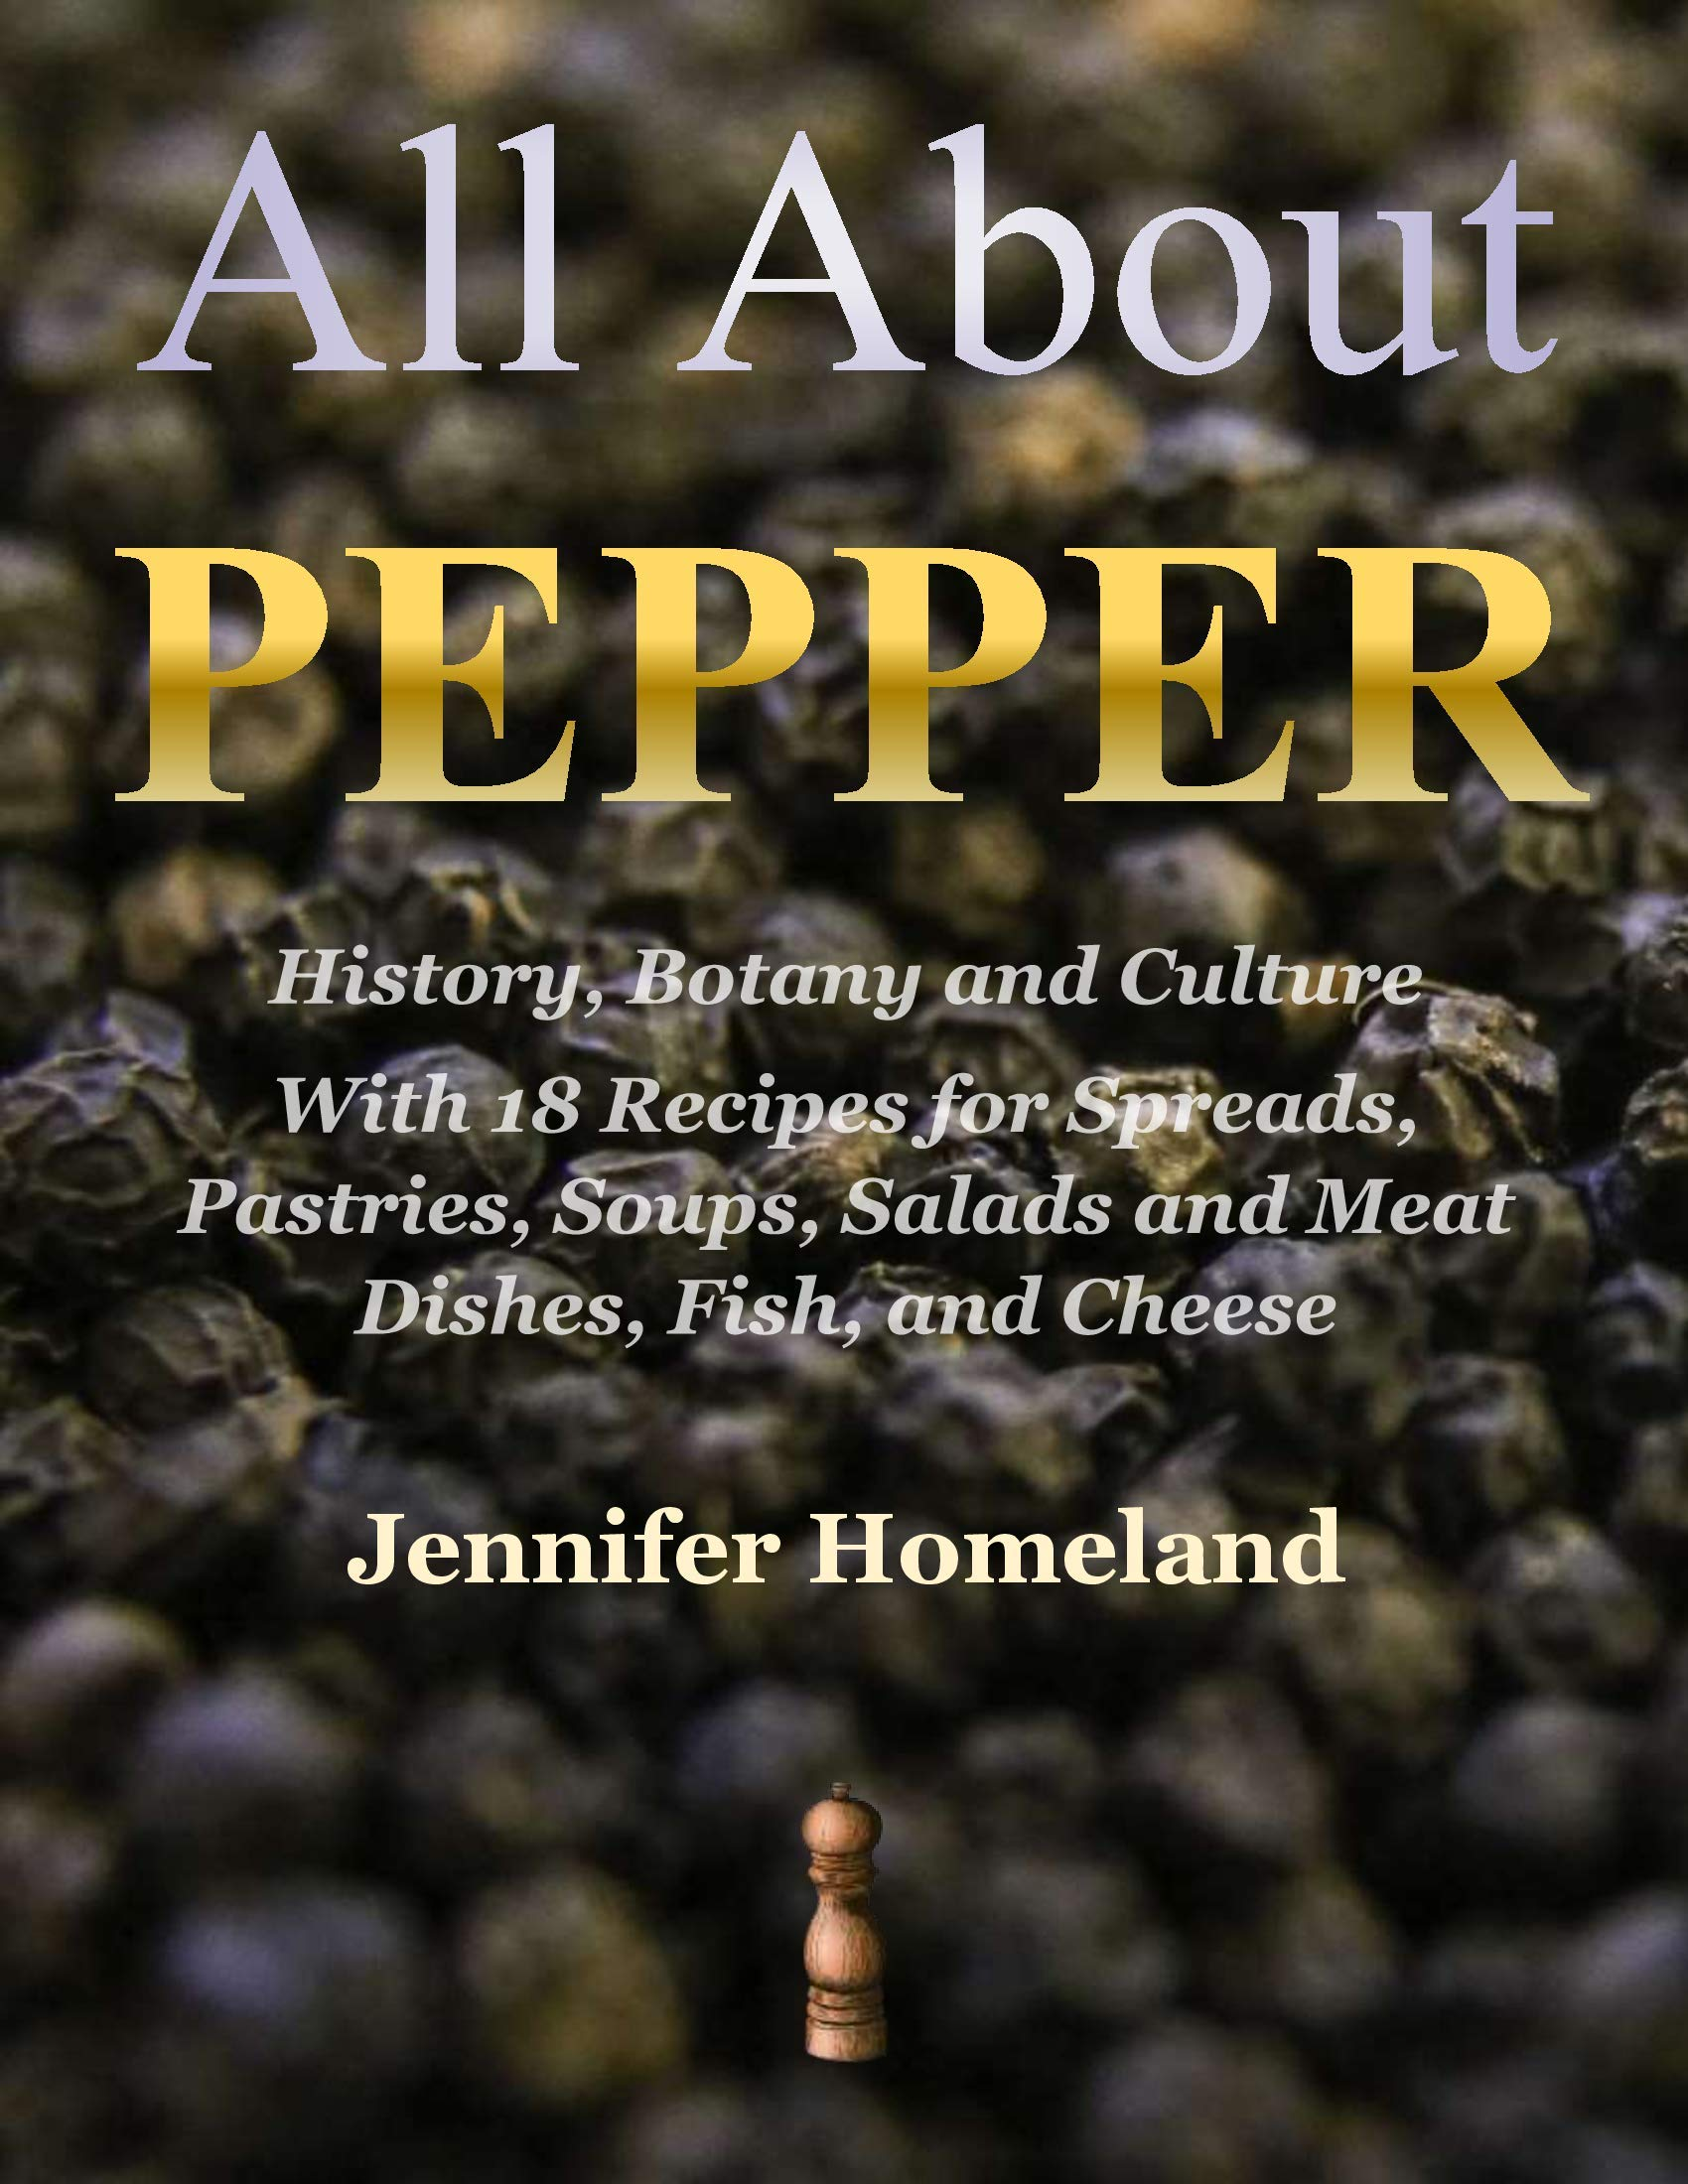 All About Pepper: History, Botany and Culture With 18 Recipes for Spreads, Pastries, Soups, Salads and Meat Dishes, Fish, and Cheese